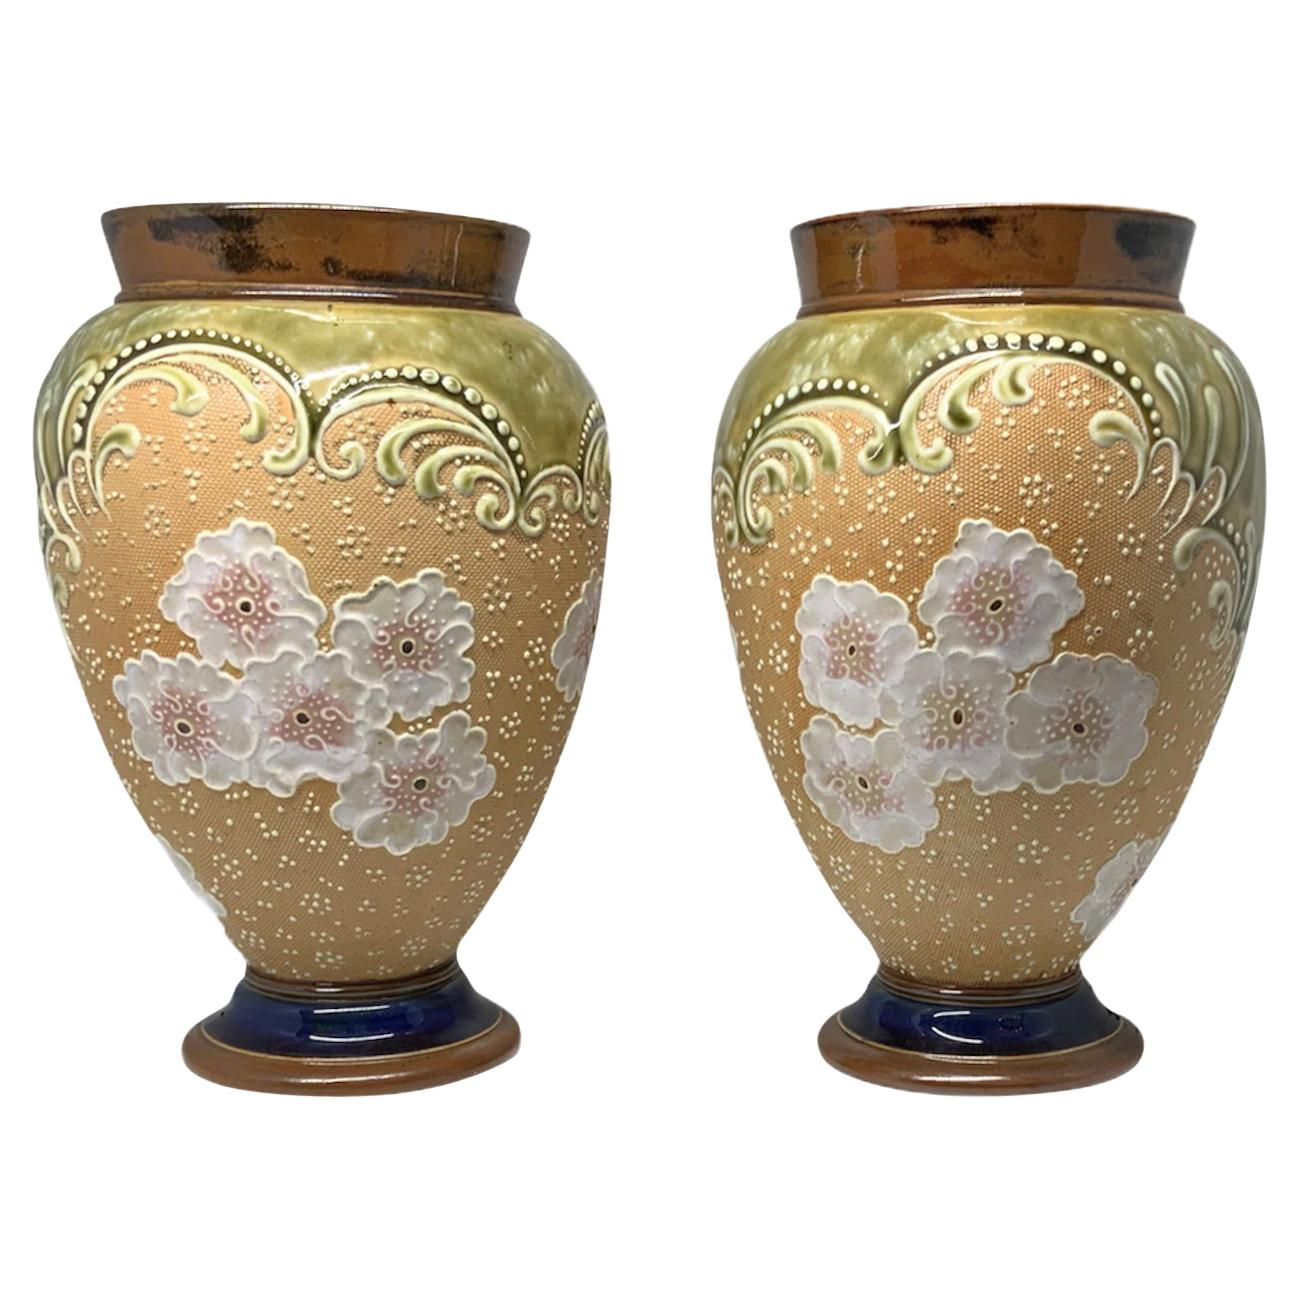 Royal Doulton and Slater Hand Painted Pair of Stoneware Vases